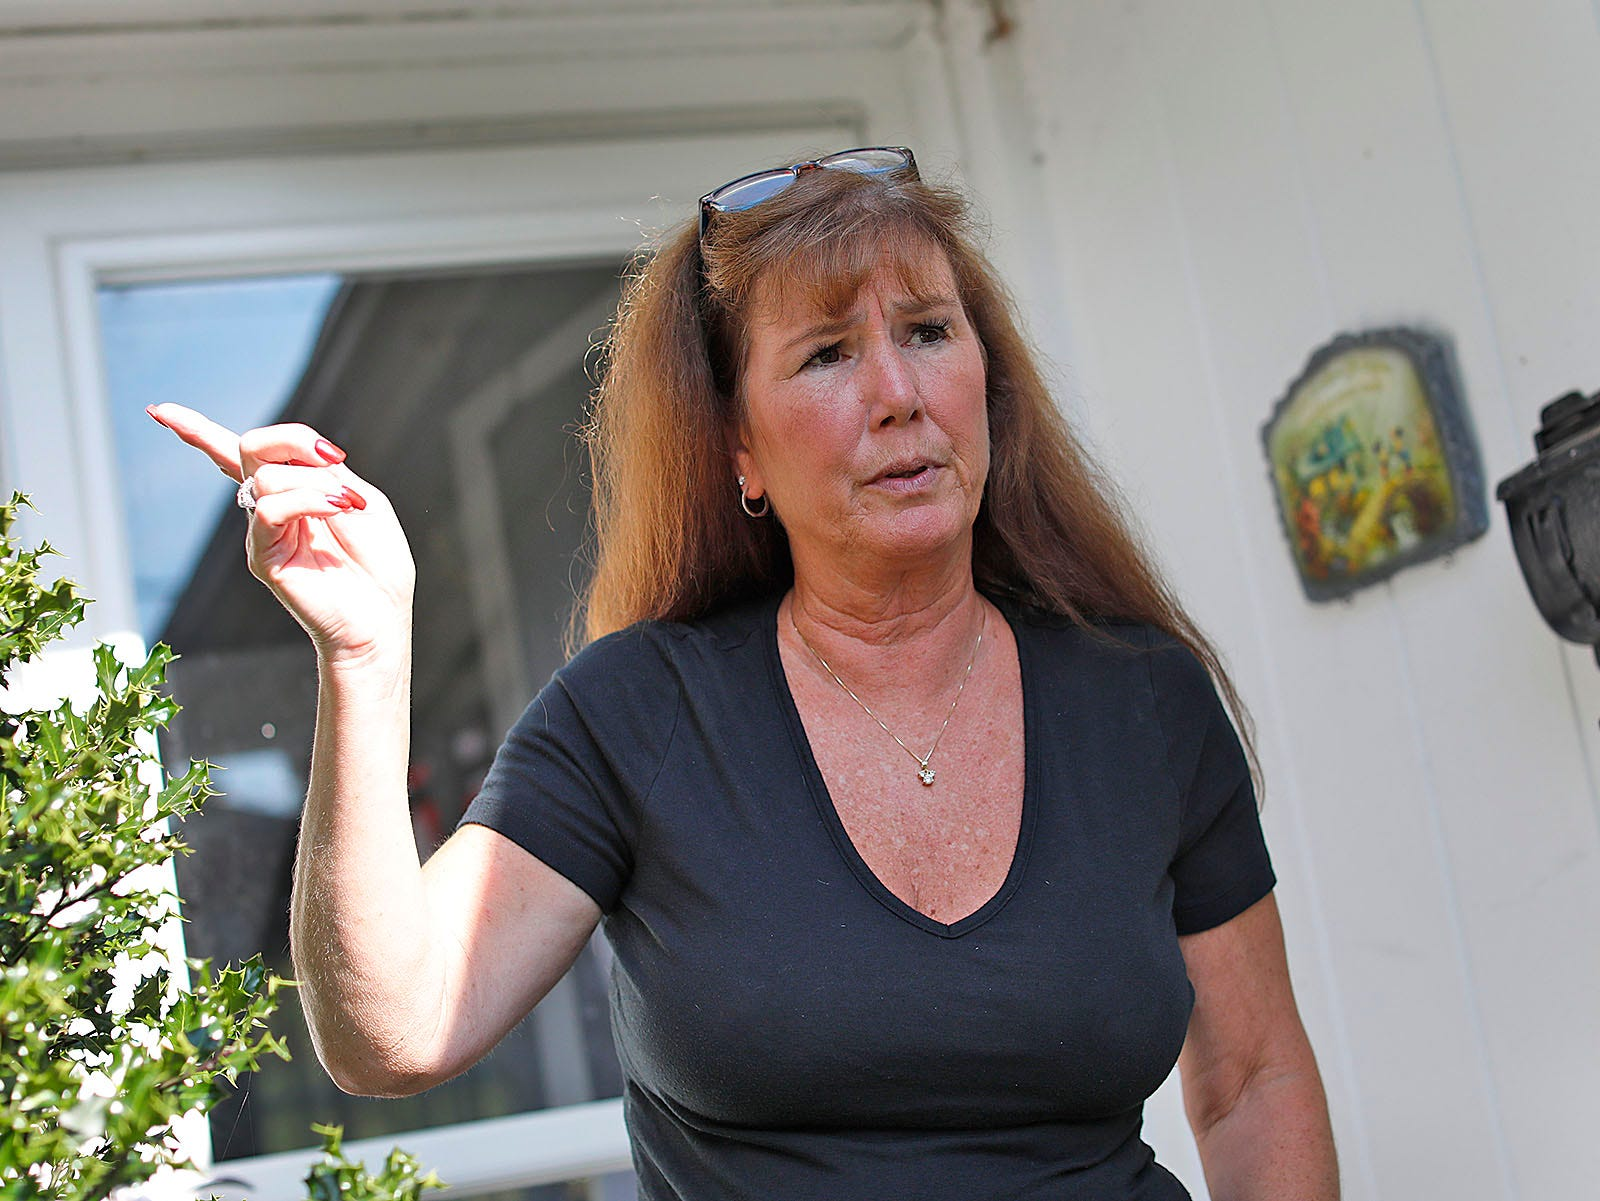 Russell Park resident Liz Brown talks about proposed development in the Quincy neighborhood on Monday, Sept. 13, 2021.